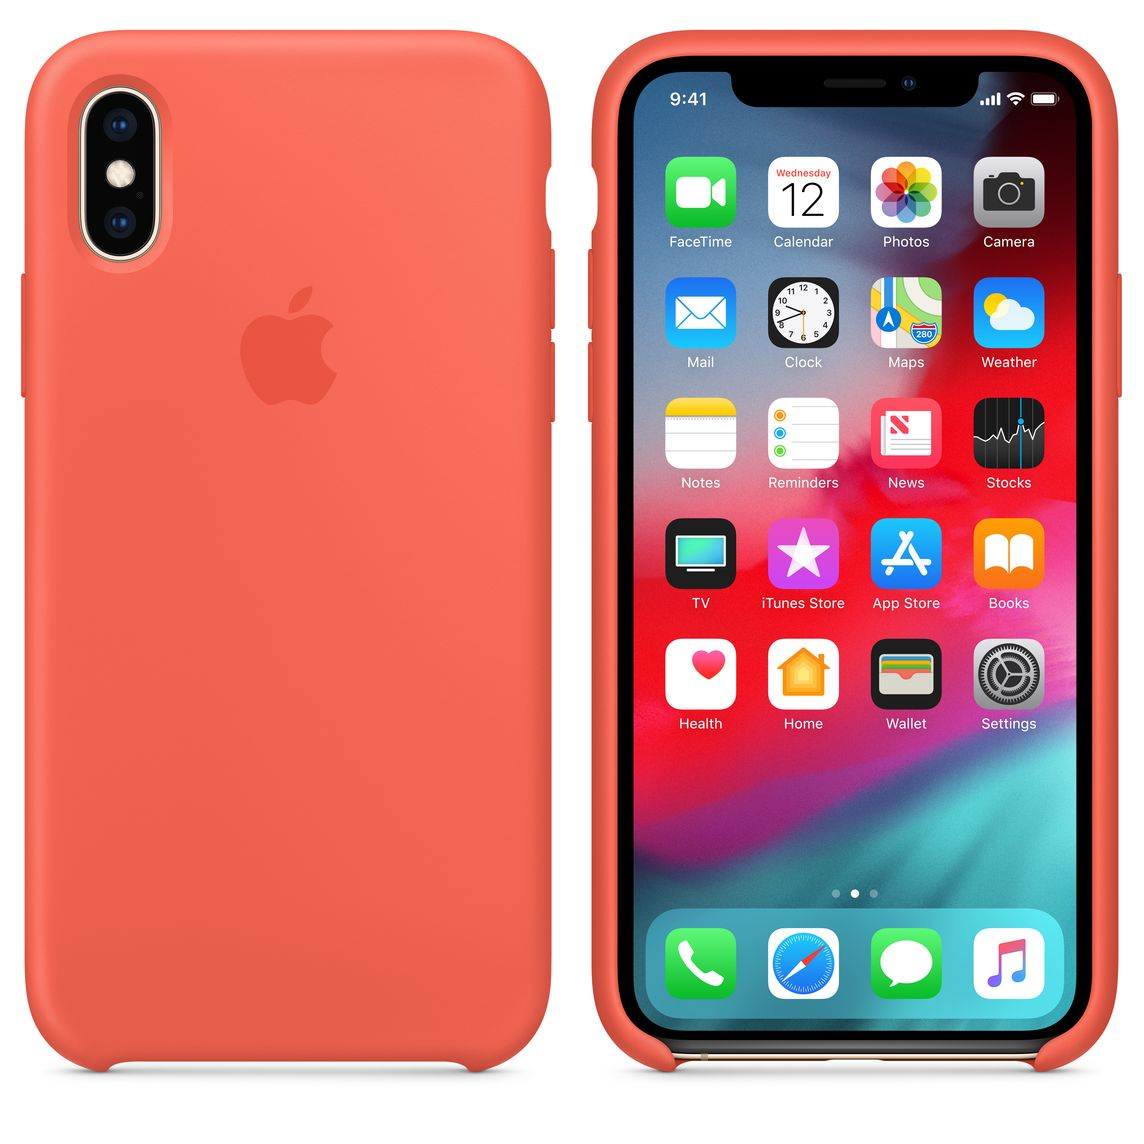 info for b337d 5a1b3 iPhone XS Silicone Case - Nectarine